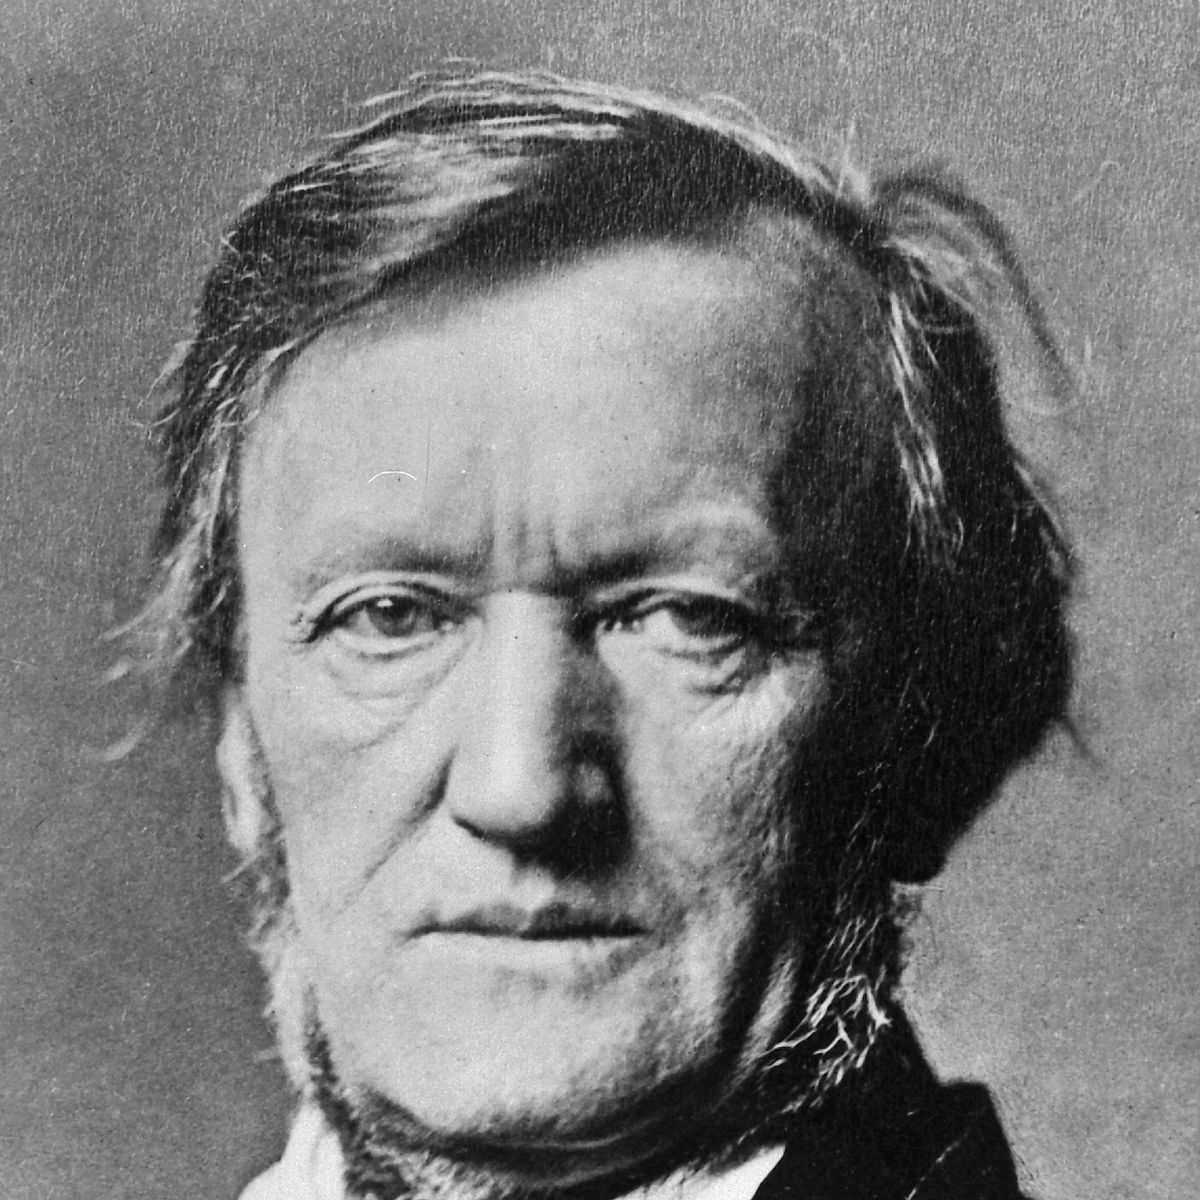 Richard Wagner: A Composer Forever Associated with Hitler